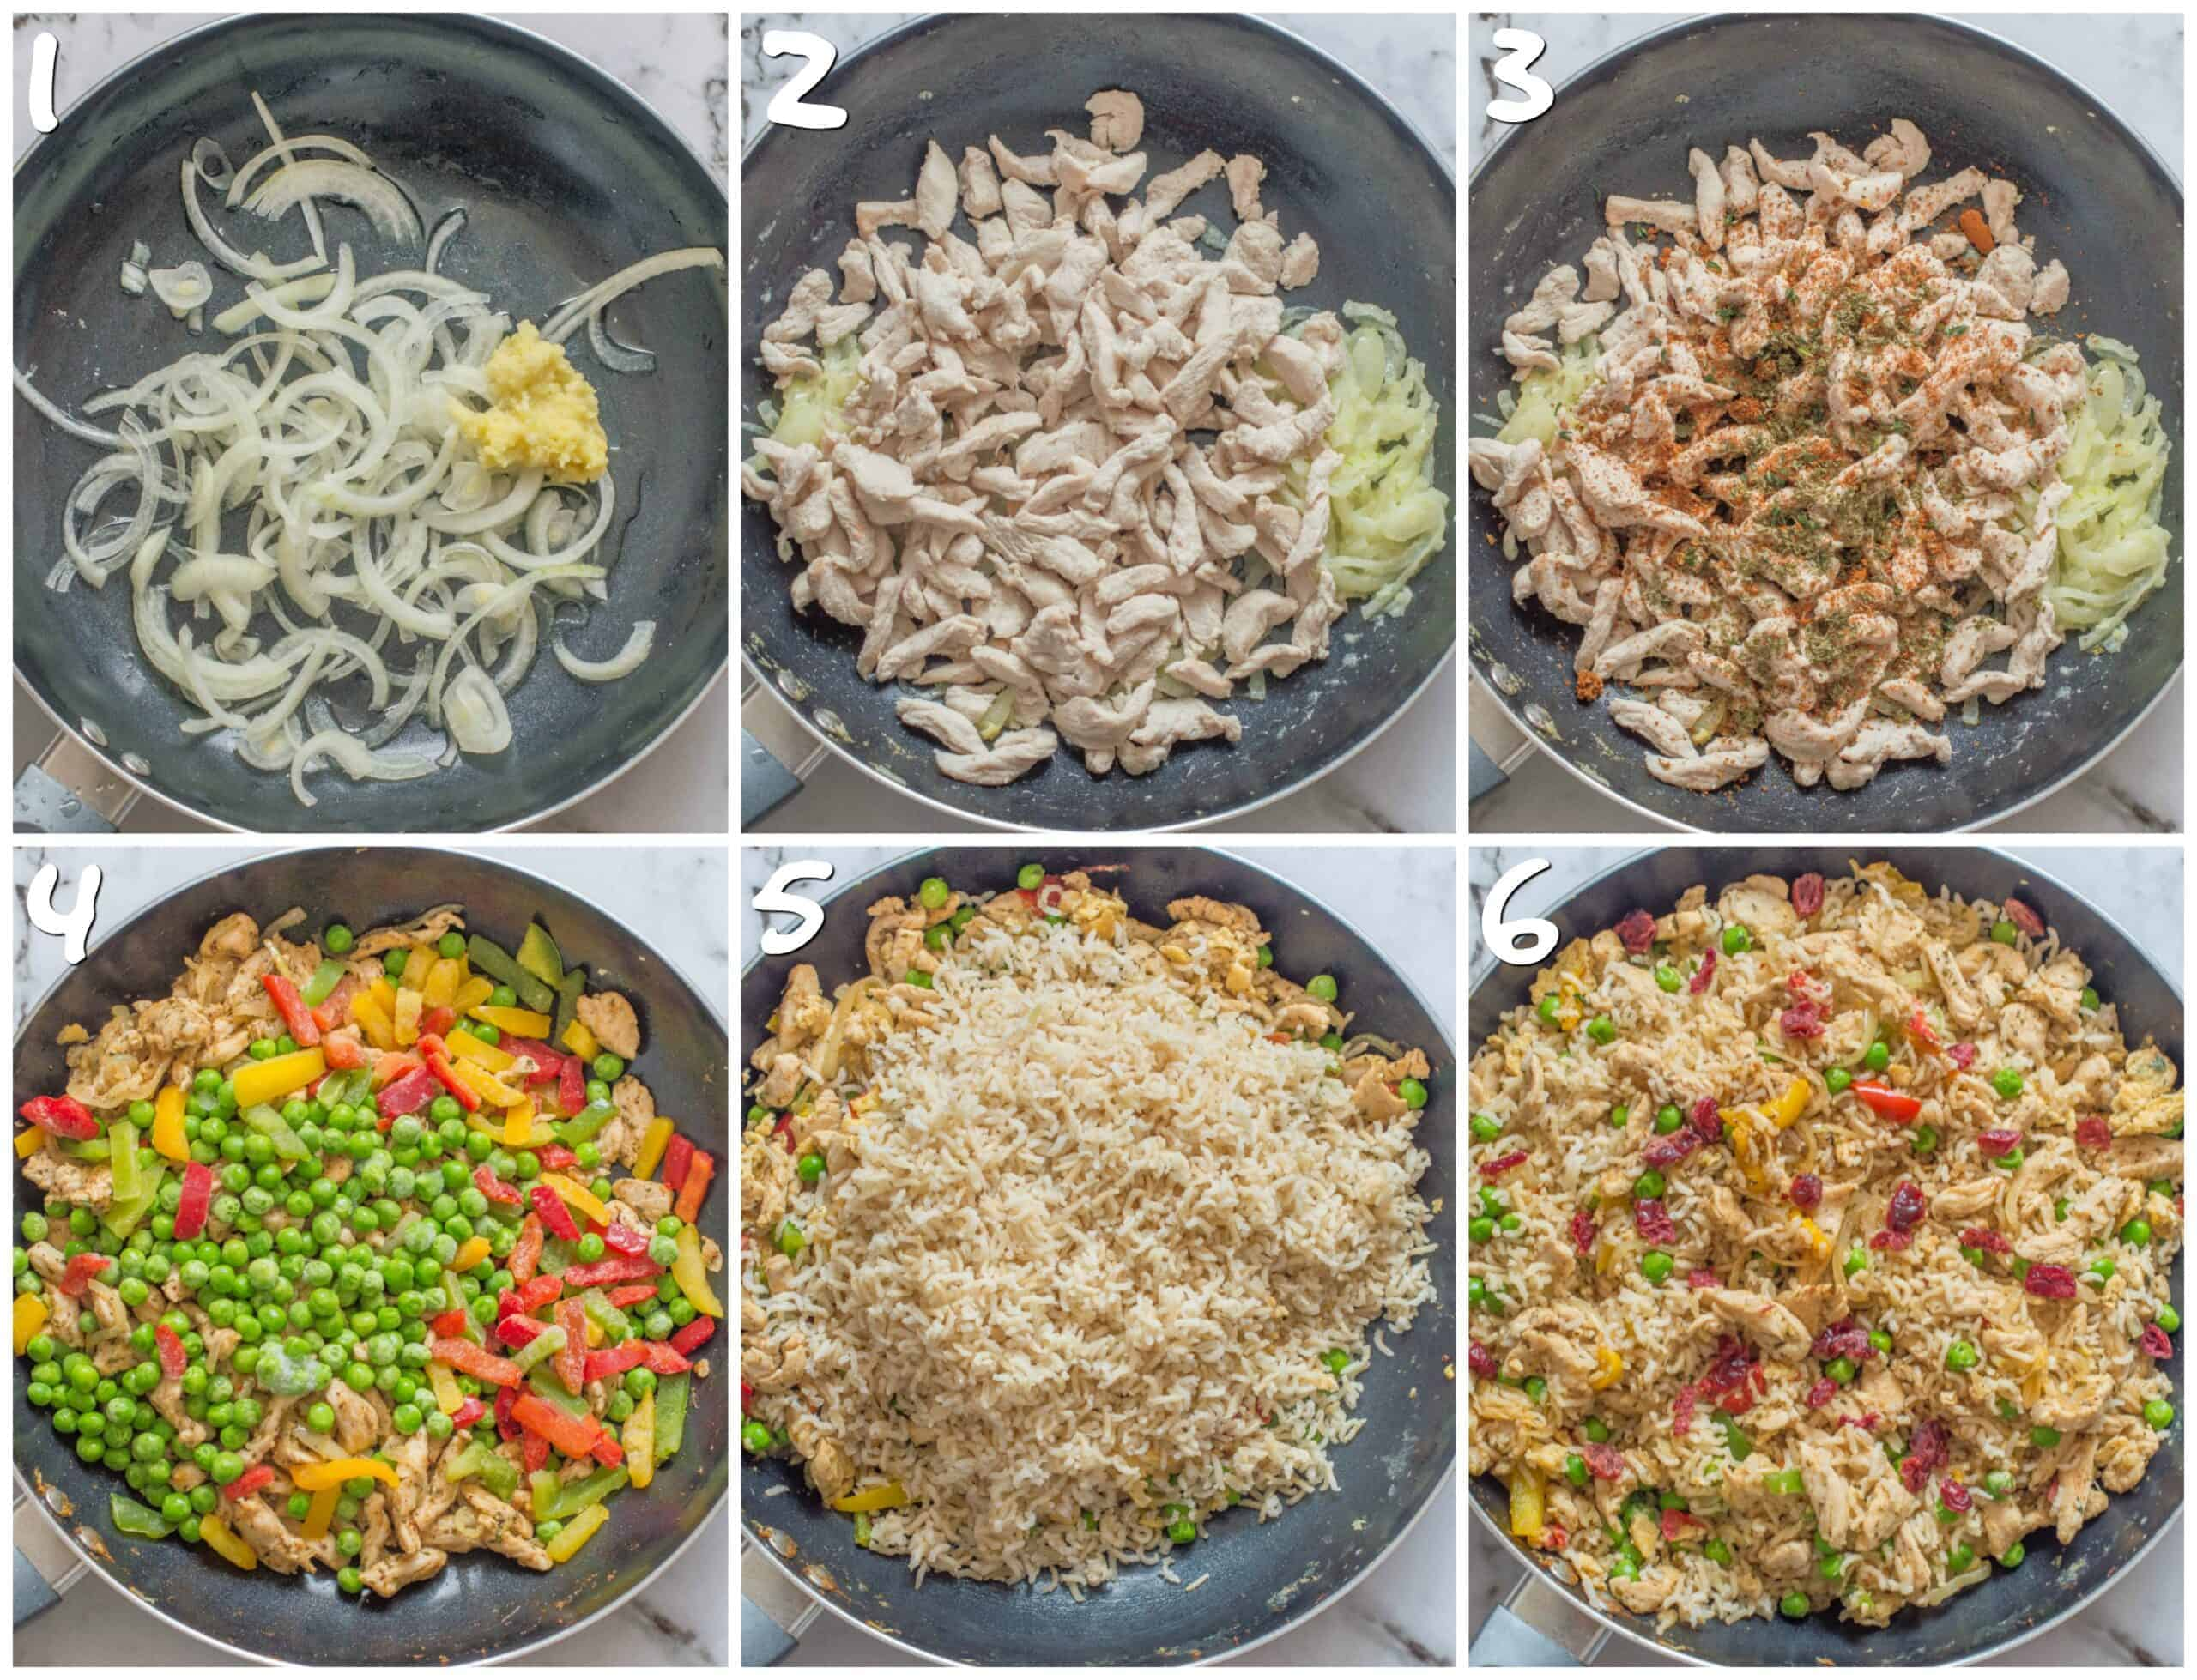 steps 1-6 making the fried rice